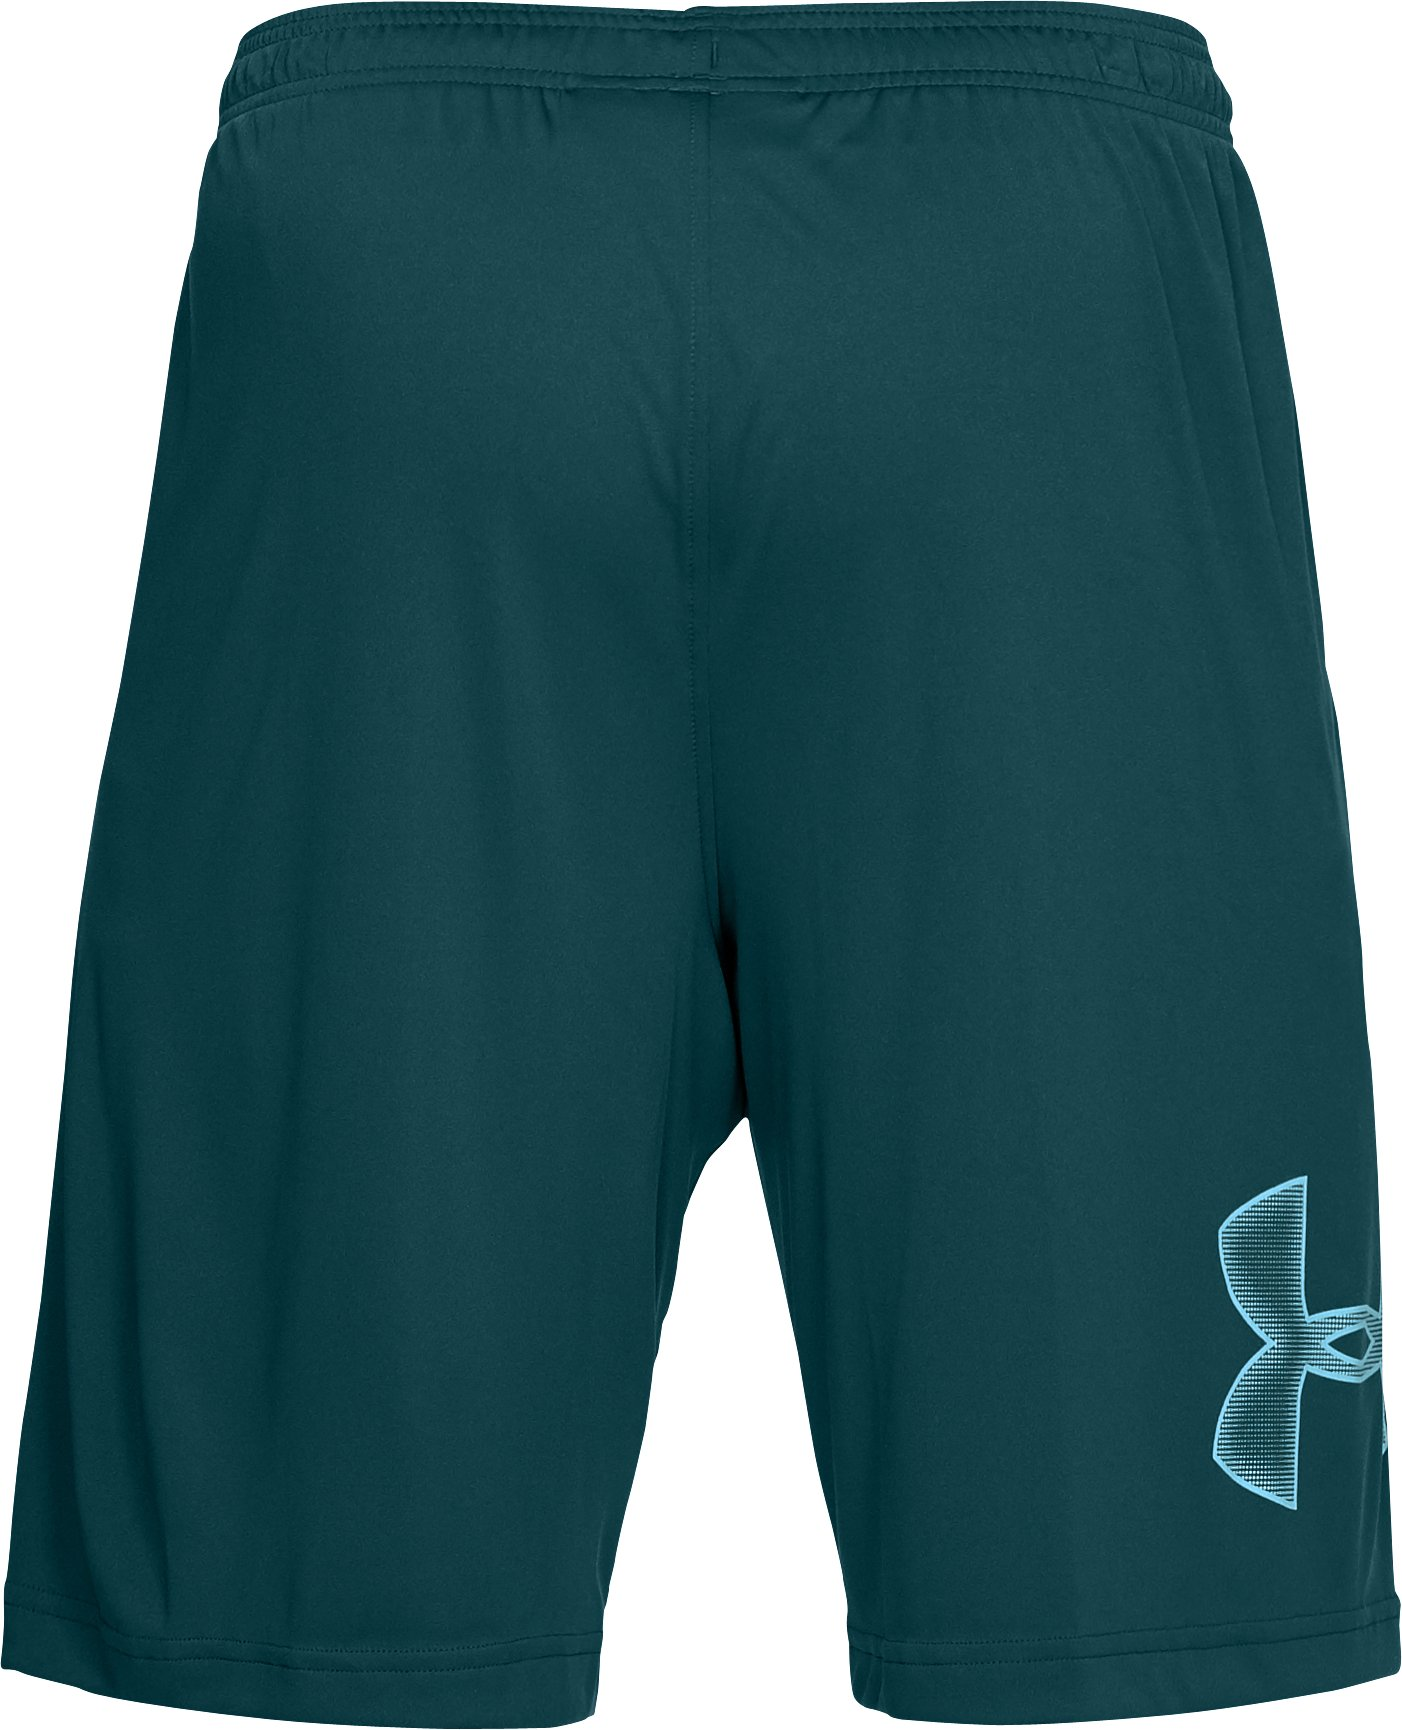 Men's UA Tech™ Graphic Shorts, TOURMALINE TEAL,